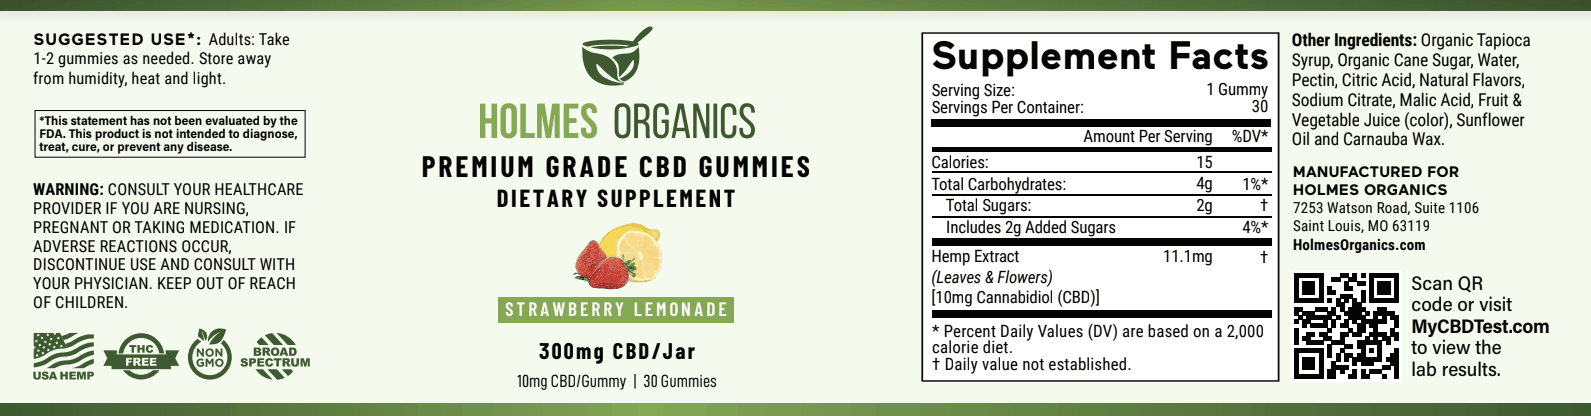 Strawberry Lemonade CBD Gummies